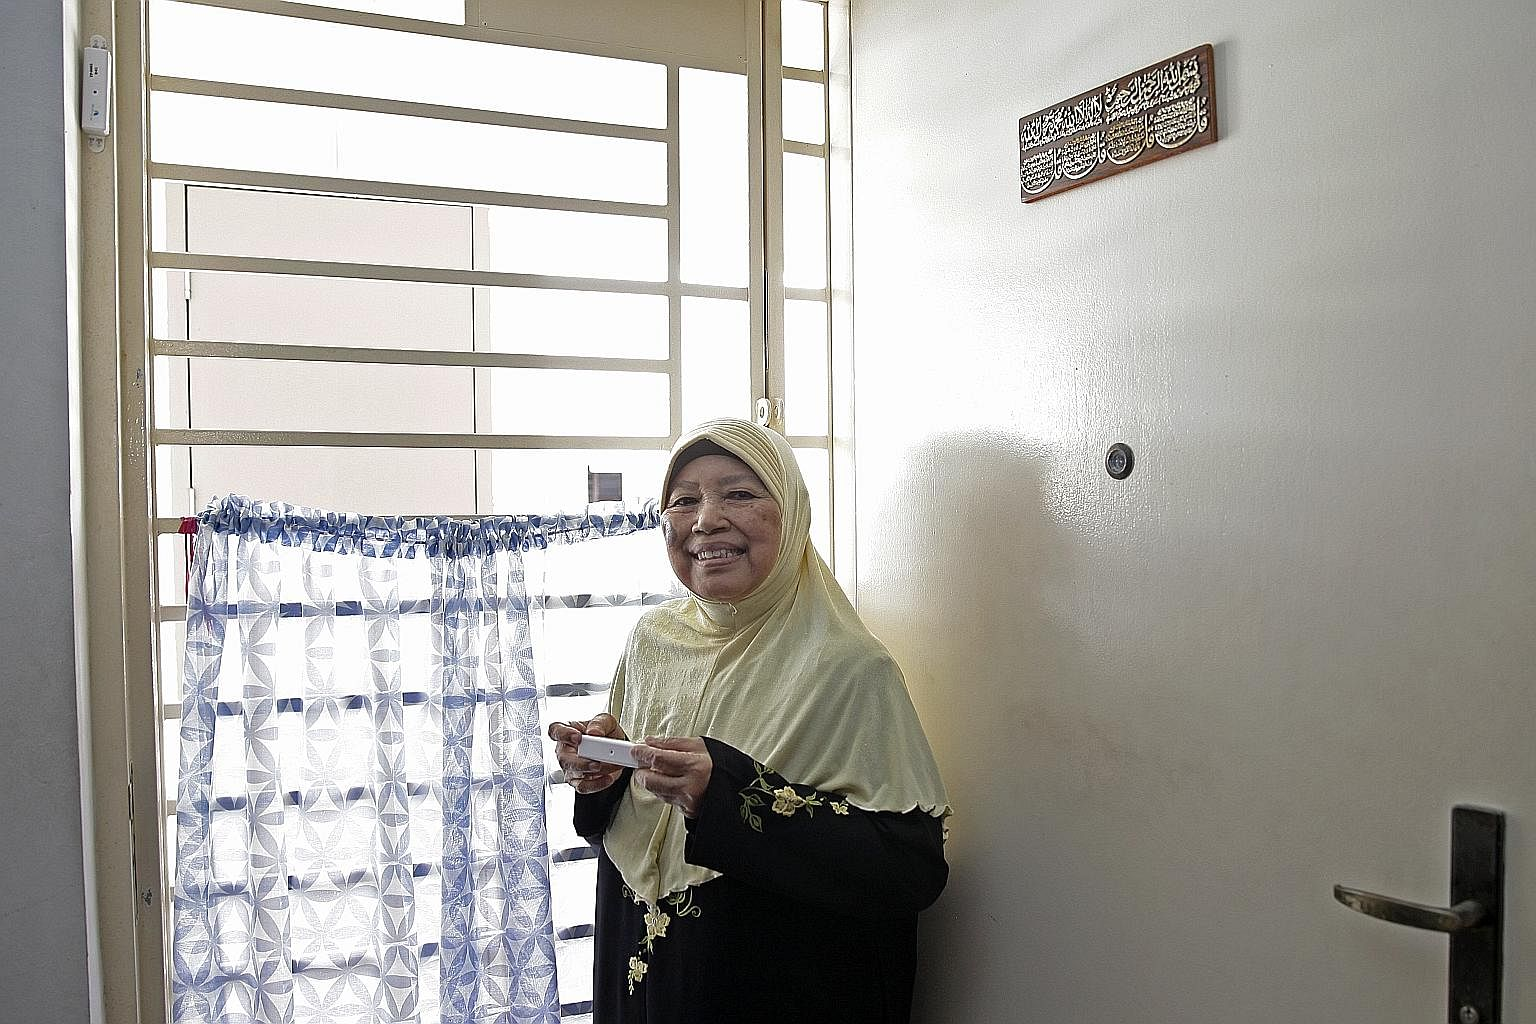 Madam Sitee Marnoor with a door sensor. A similar one was mounted on the frame of her main door in September. Since then, it has sent out three alerts.